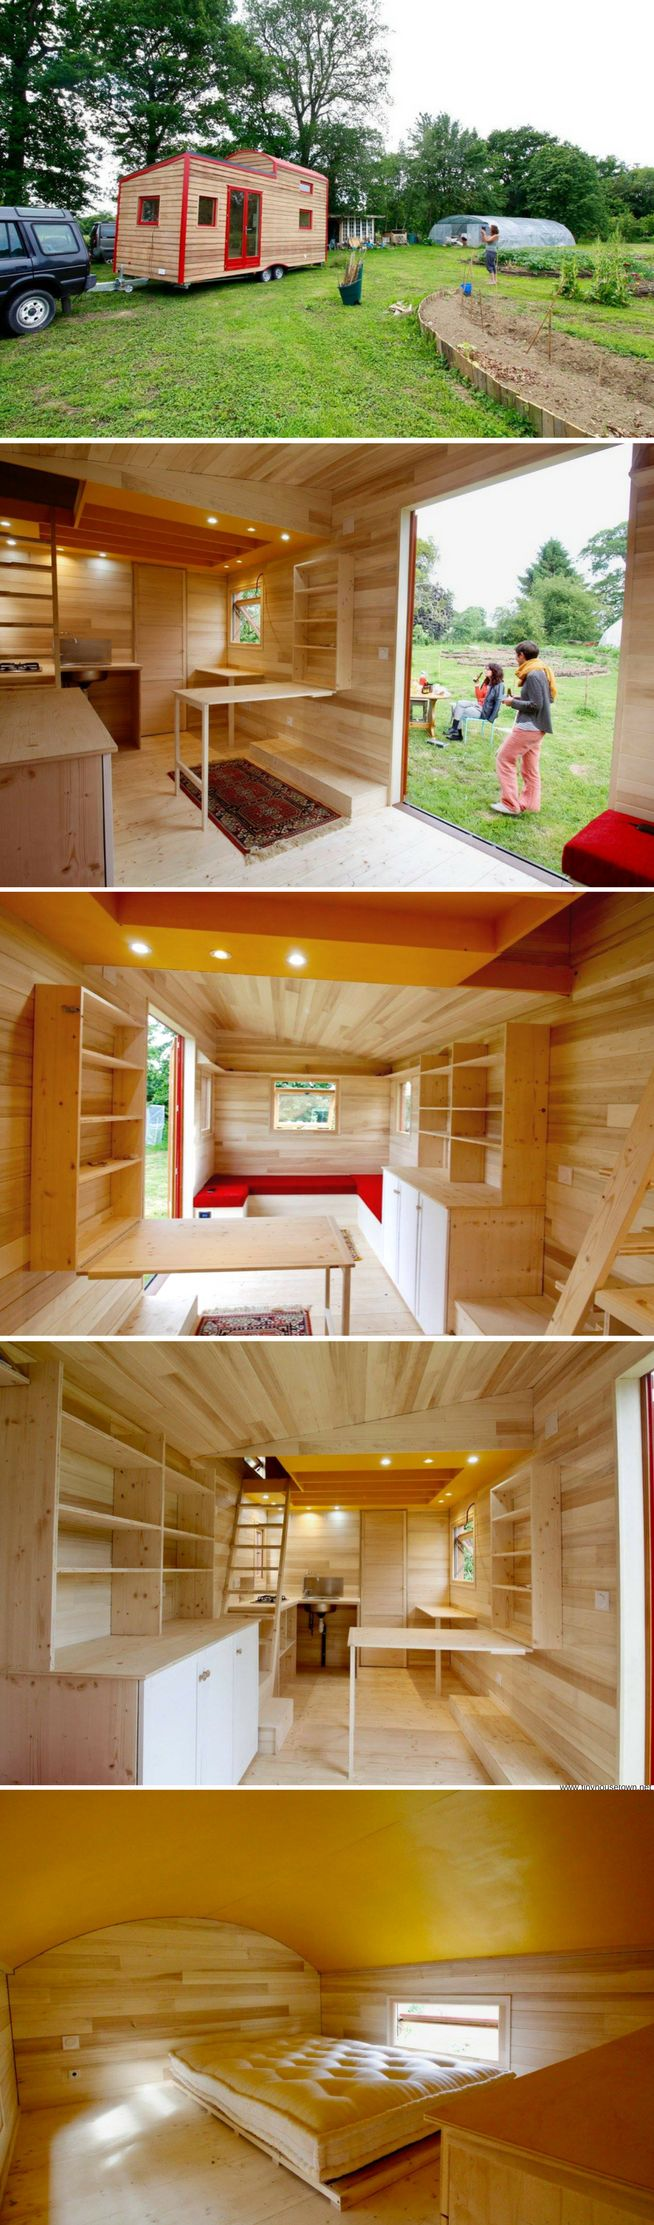 Modern Tiny House Plans best 25+ modern tiny house ideas only on pinterest | tiny homes